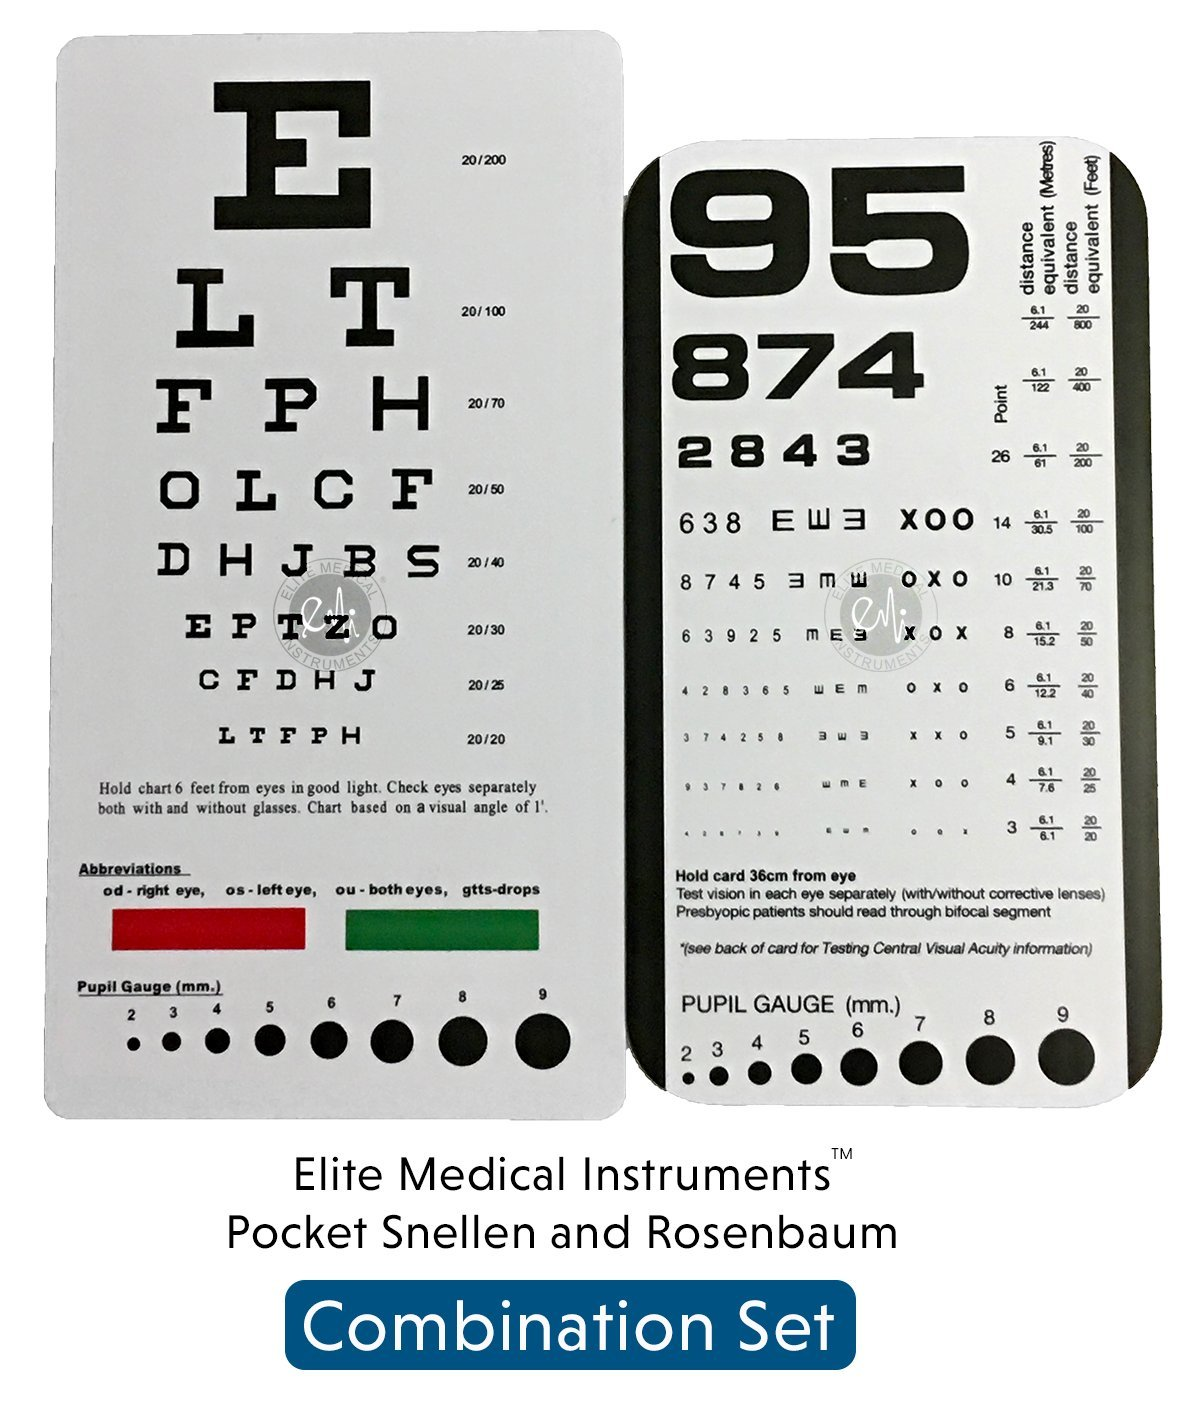 graphic about Rosenbaum Chart Printable called Acquire EMI Rosenbaum AND Snellen Pocket Eye Charts - 2 Pack inside